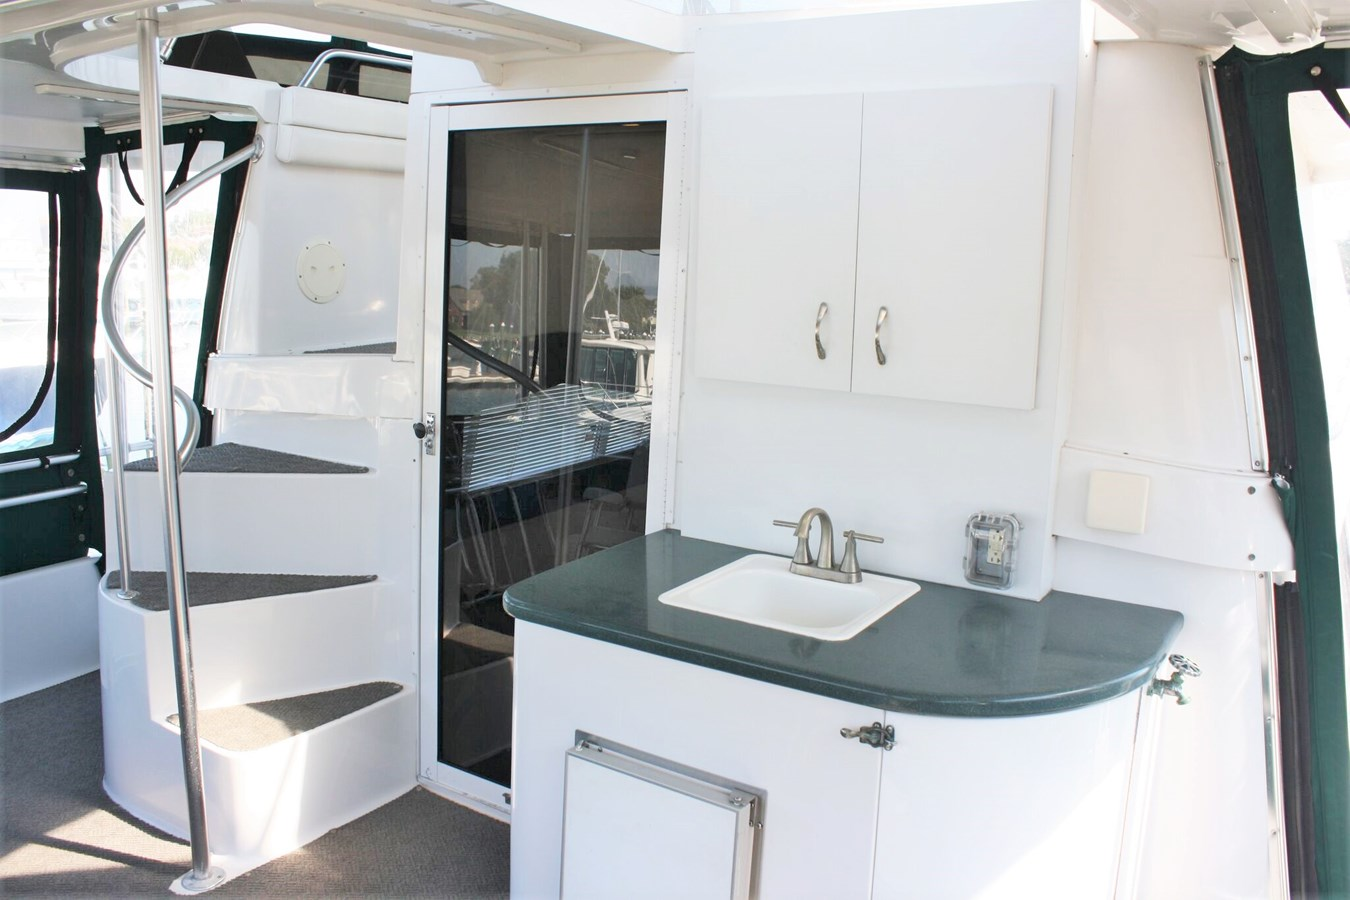 5 - 47 MAINSHIP For Sale